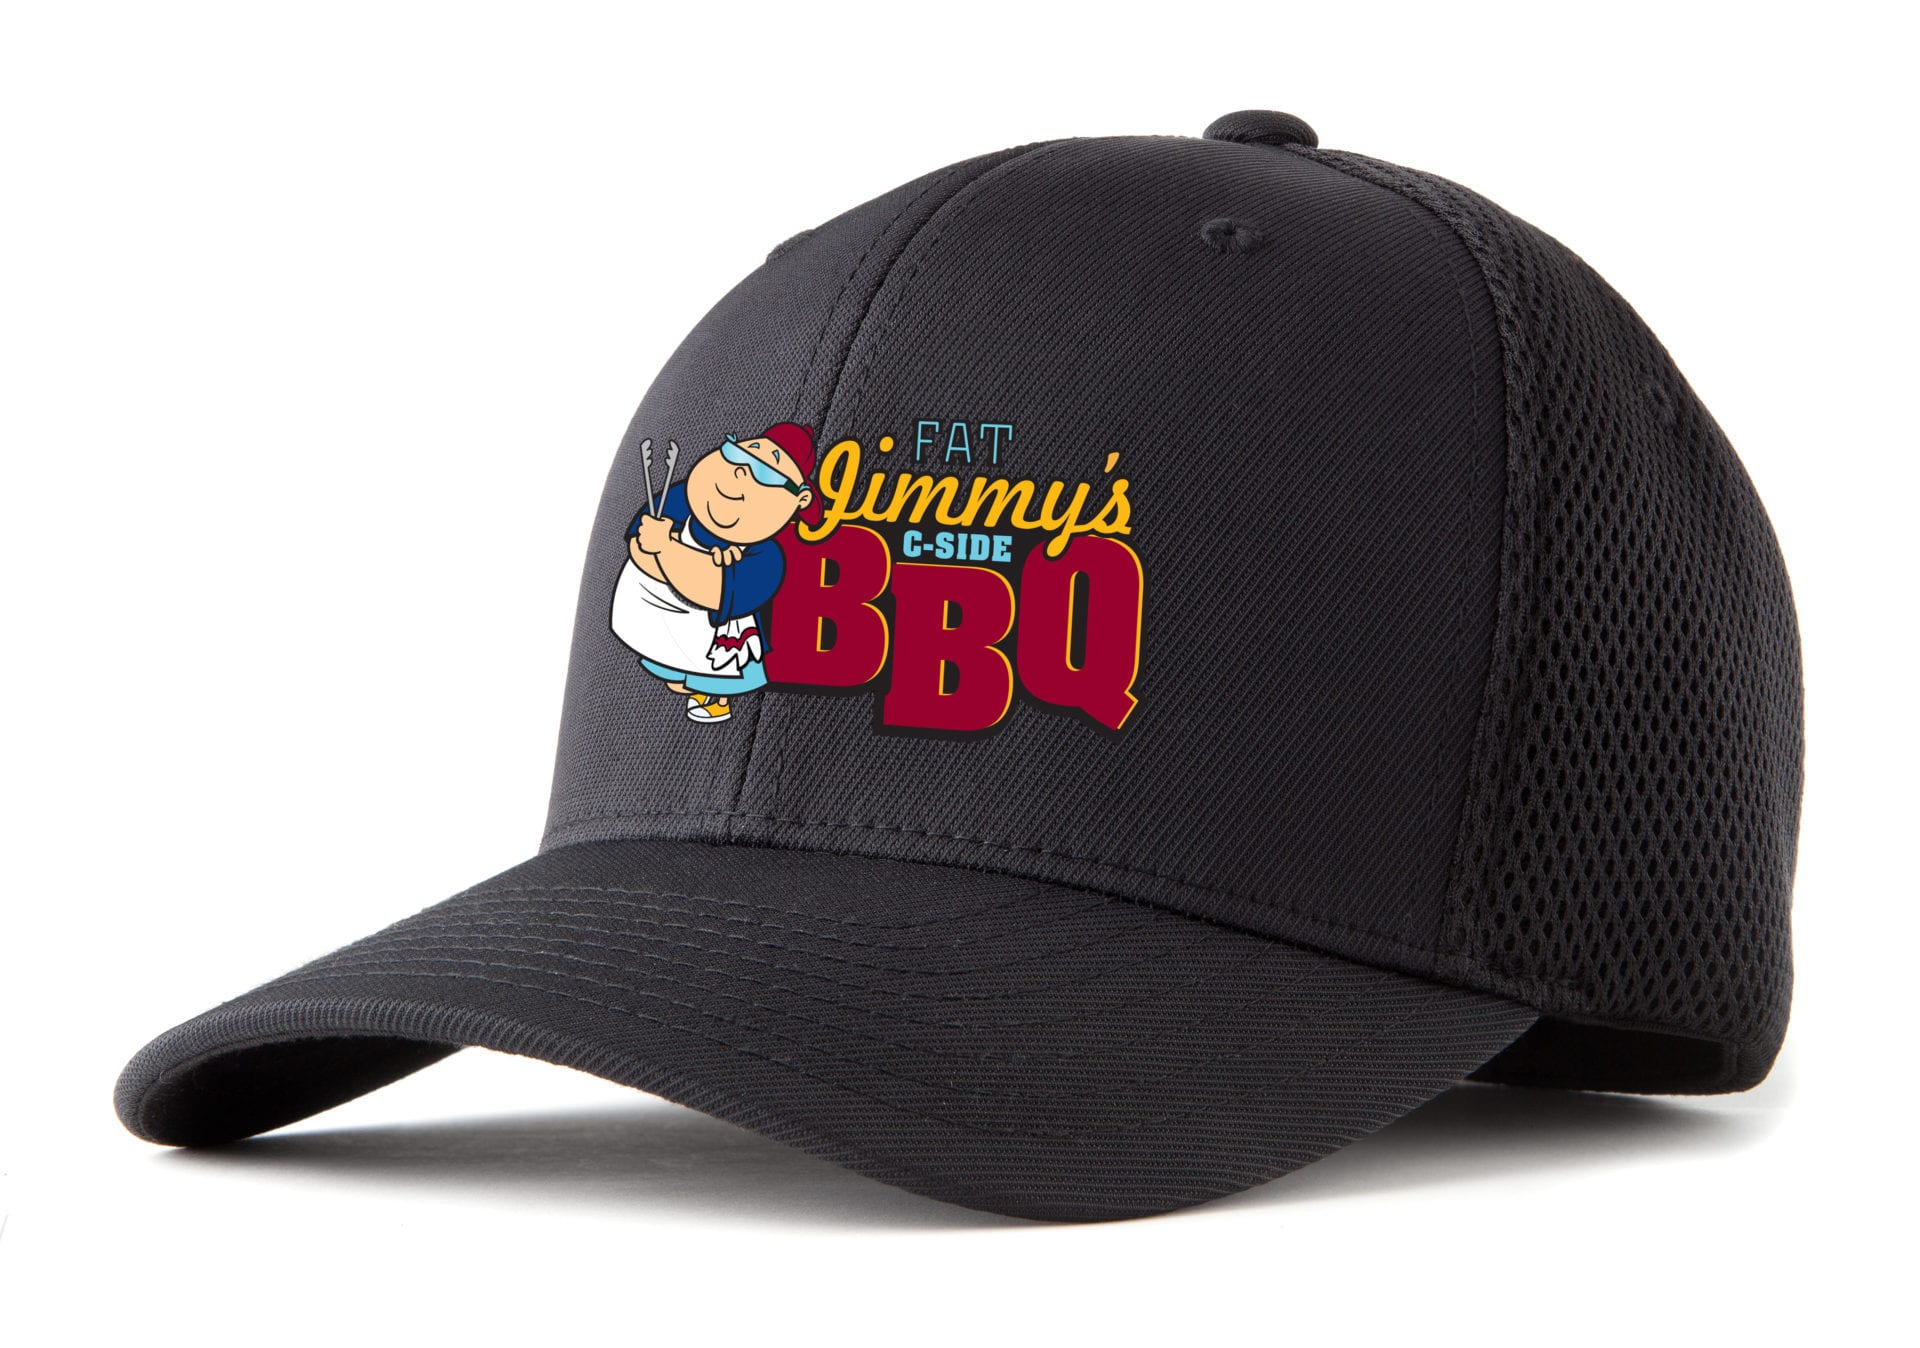 A baseball cap with the Fat Jimmy's C-Side BBQ logo